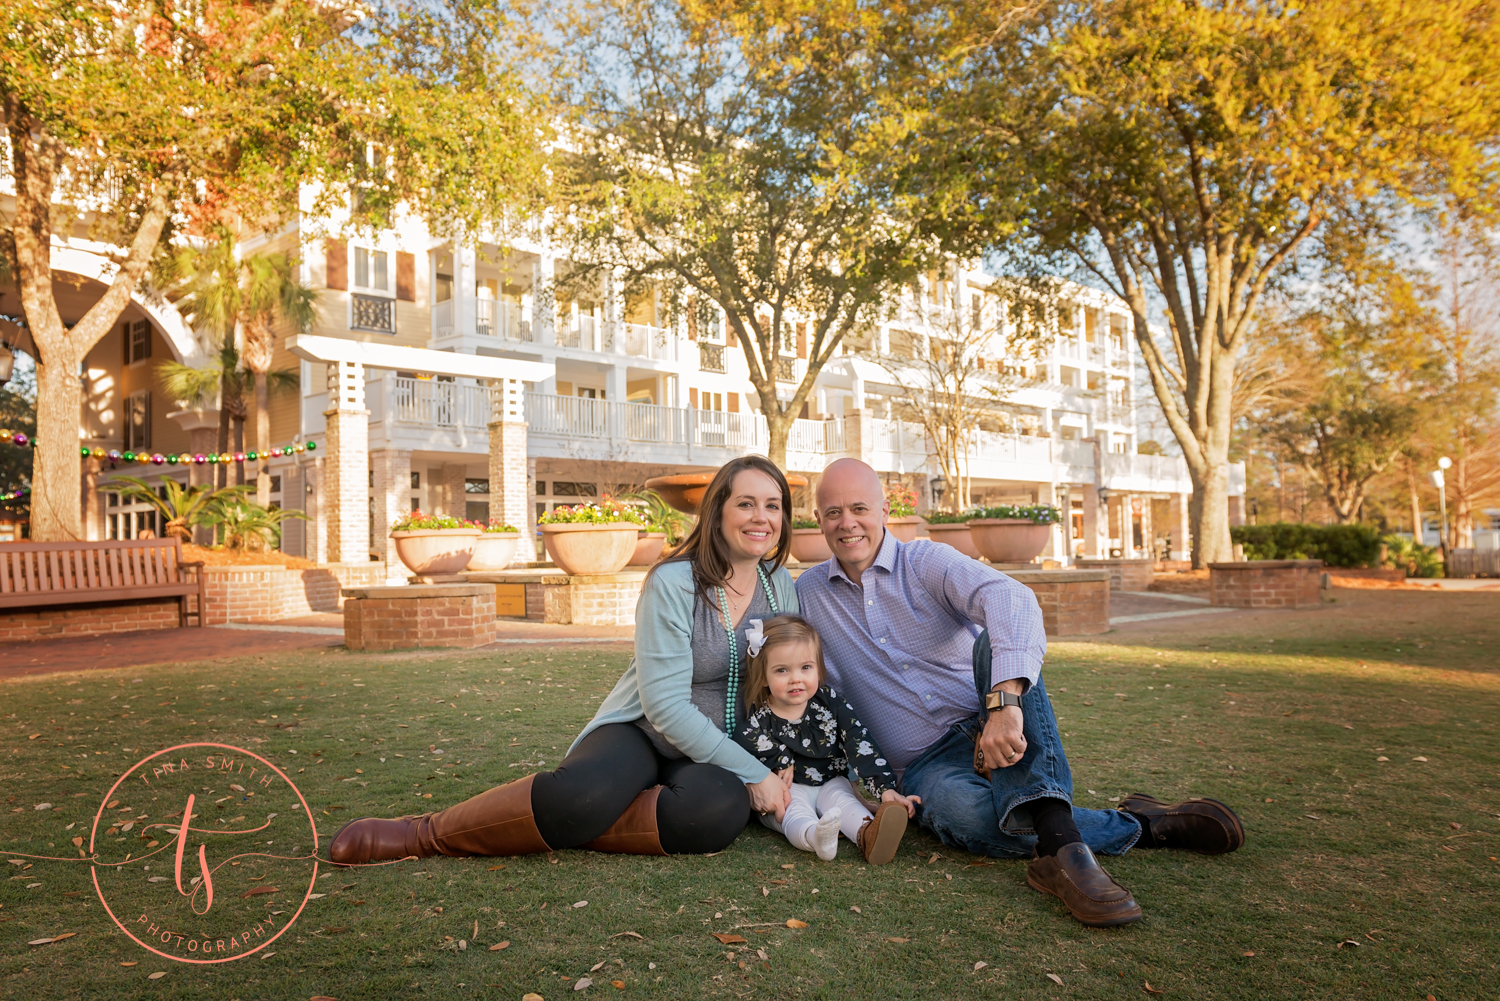 family sitting on lawn baytowne wharf smiling for photographer